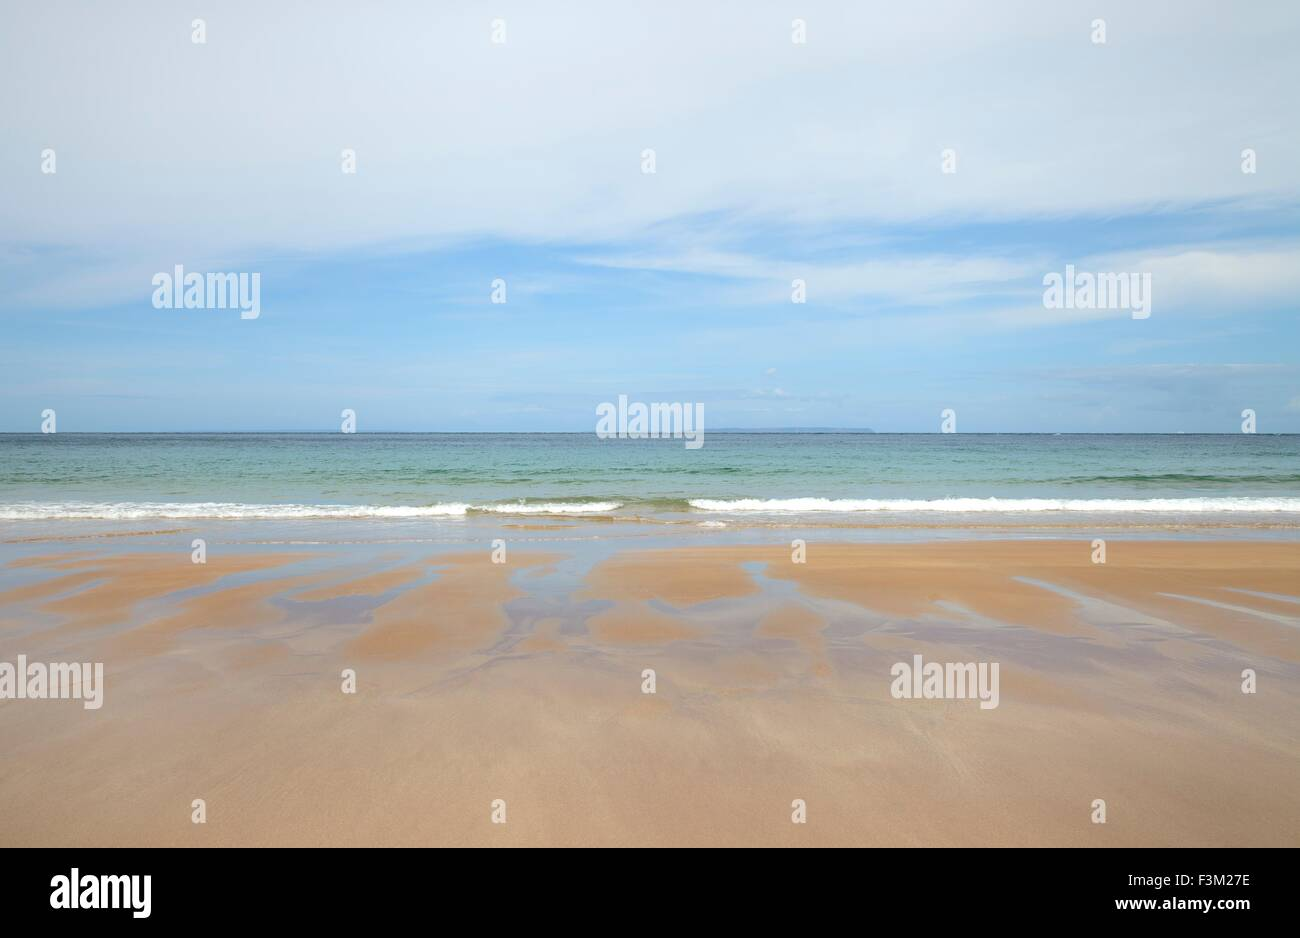 A calm, relaxing beach background with muted colours. Stock Photo